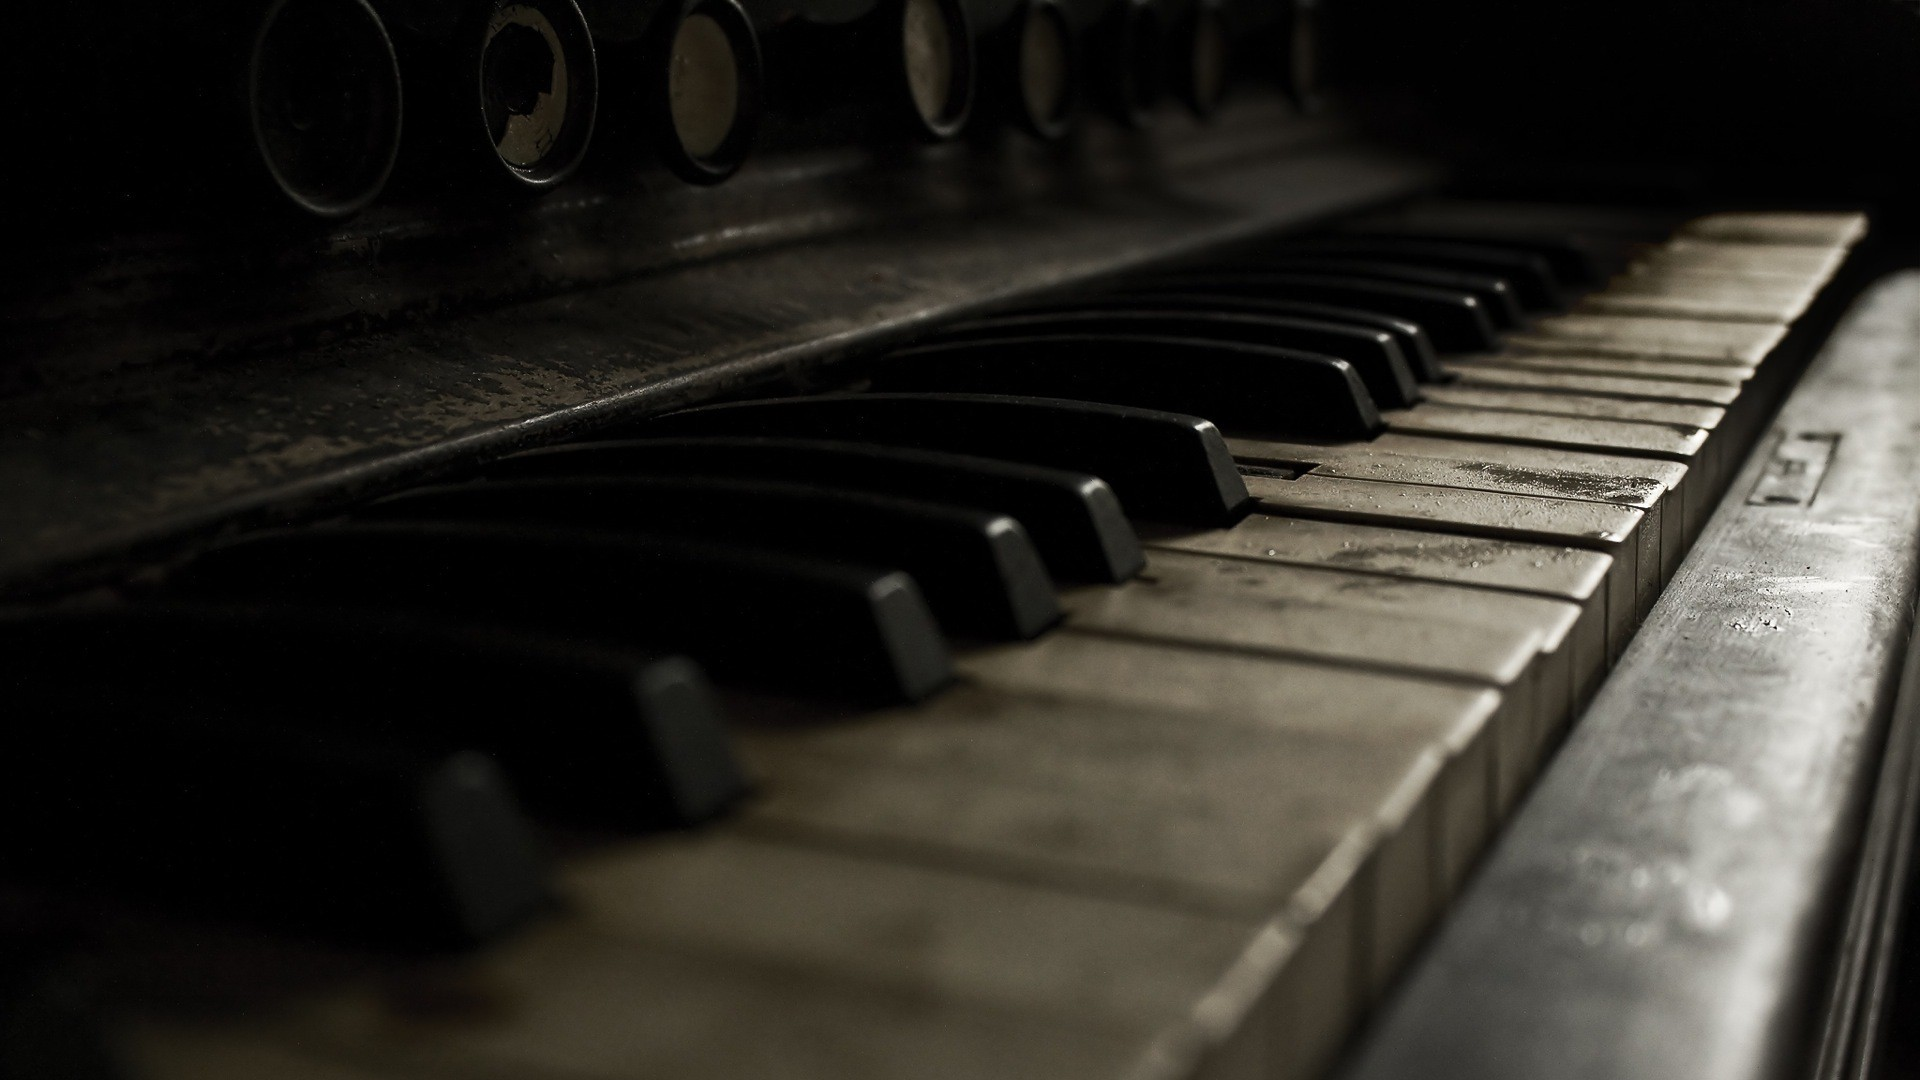 1920x1080 Piano images Piano HD wallpaper and background photos